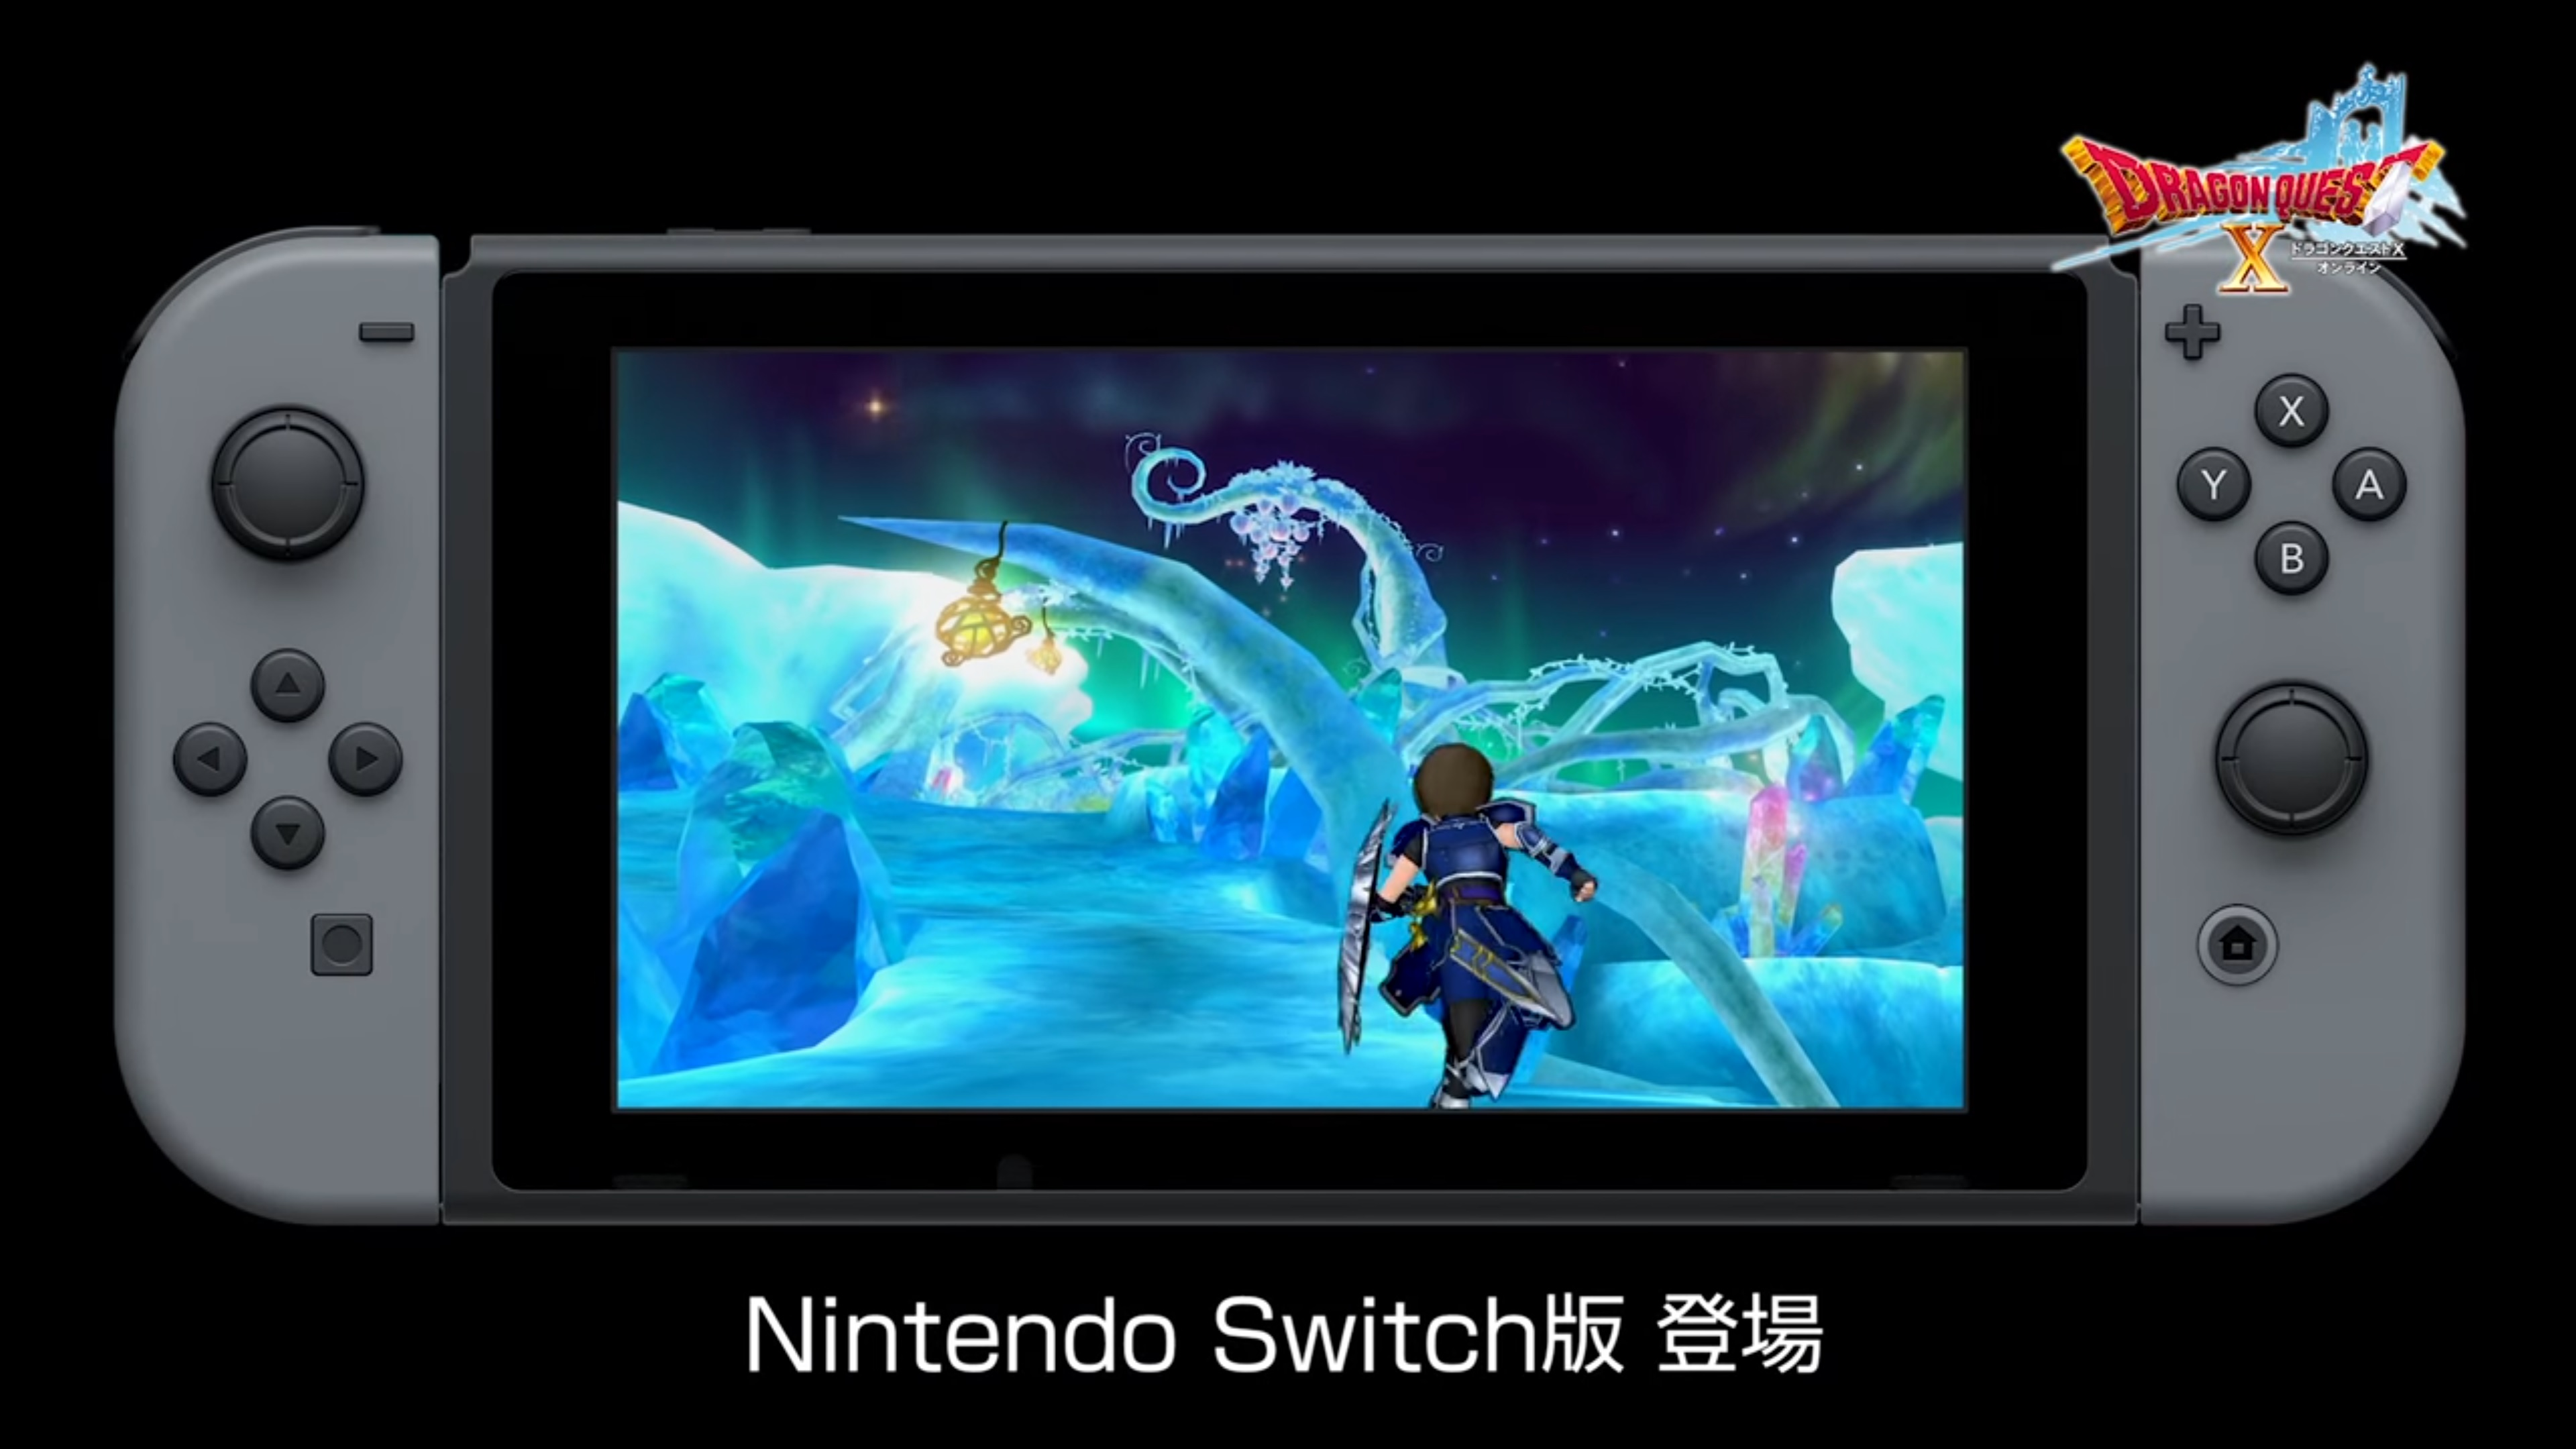 owners of dragon quest x on wii can get switch version for free